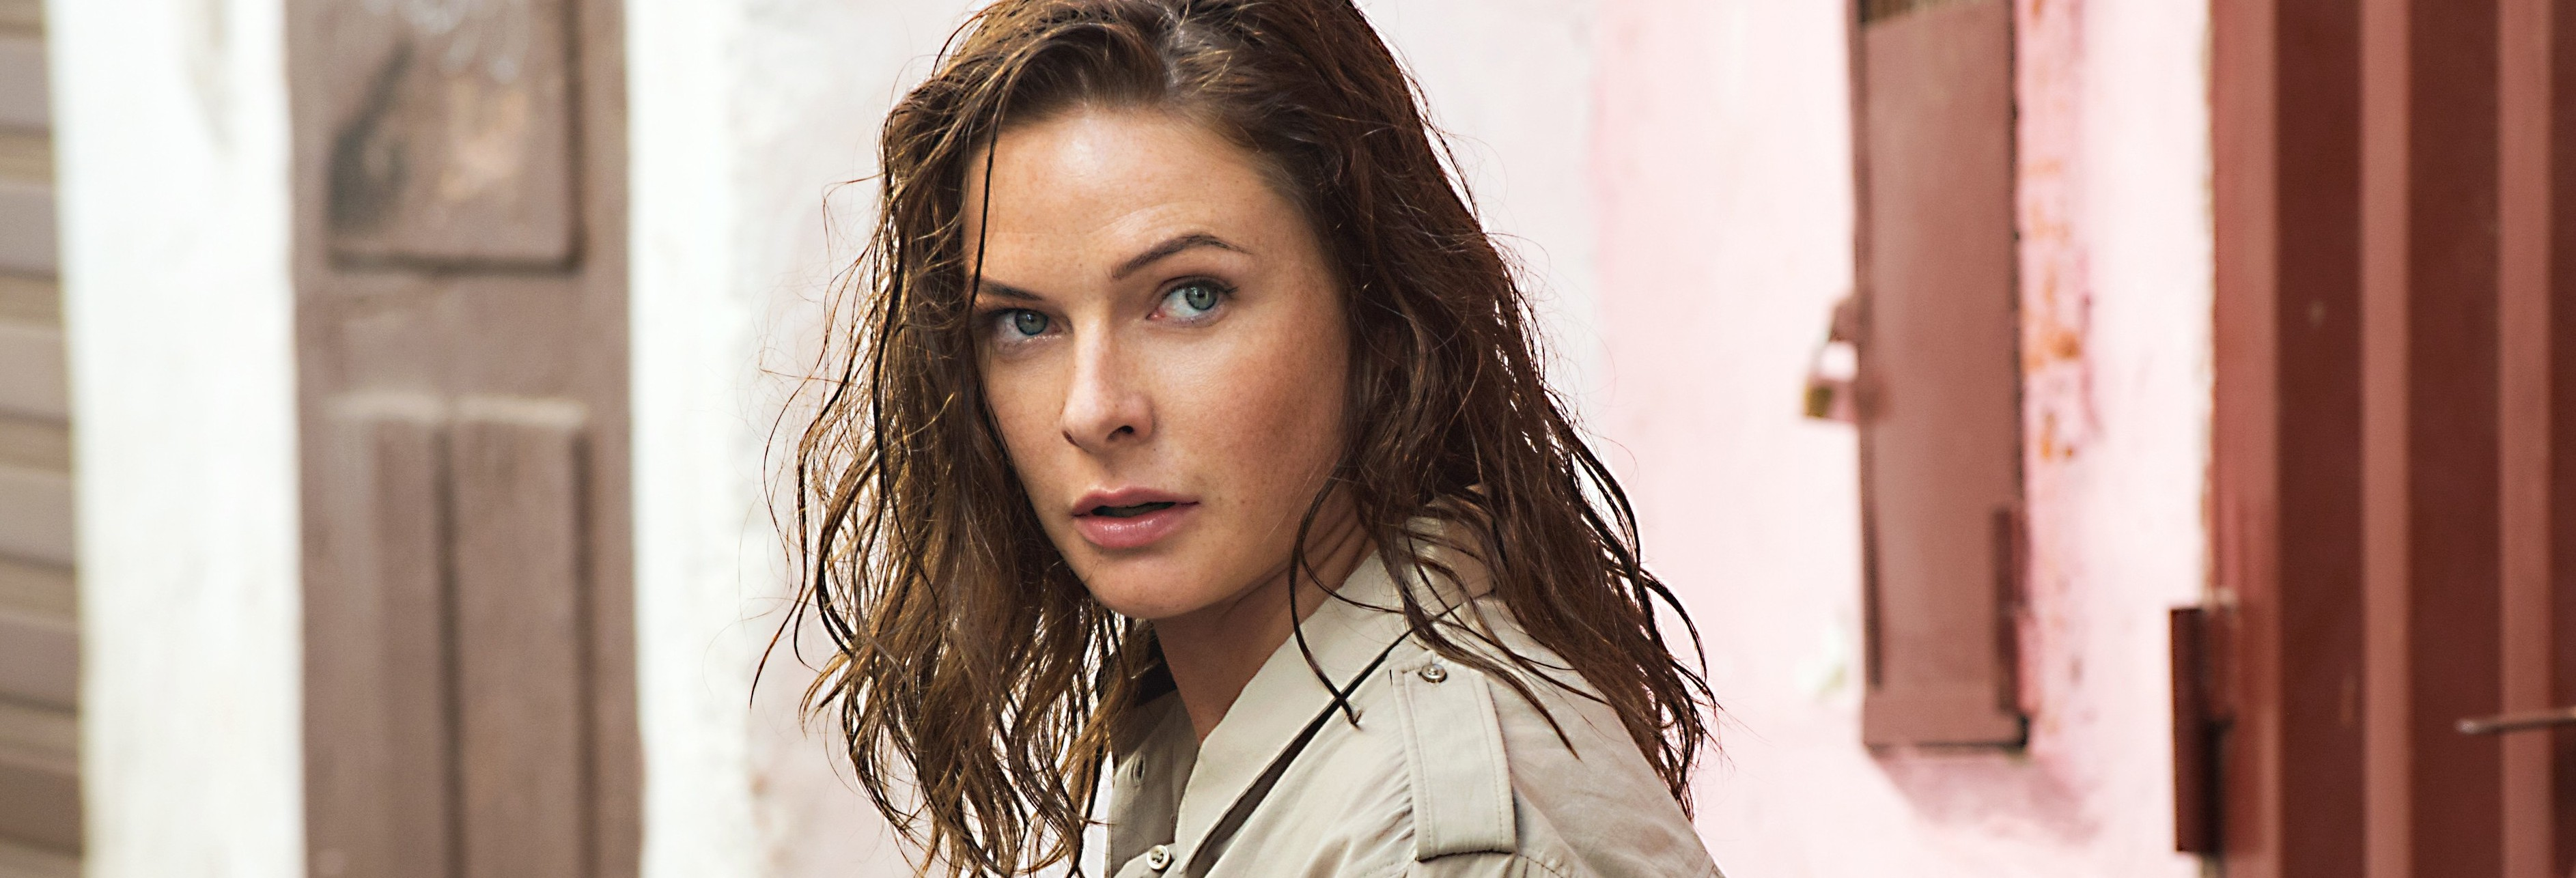 mission_impossible_rogue_nation-girl-image-rebecca_ferguson-3840x2400